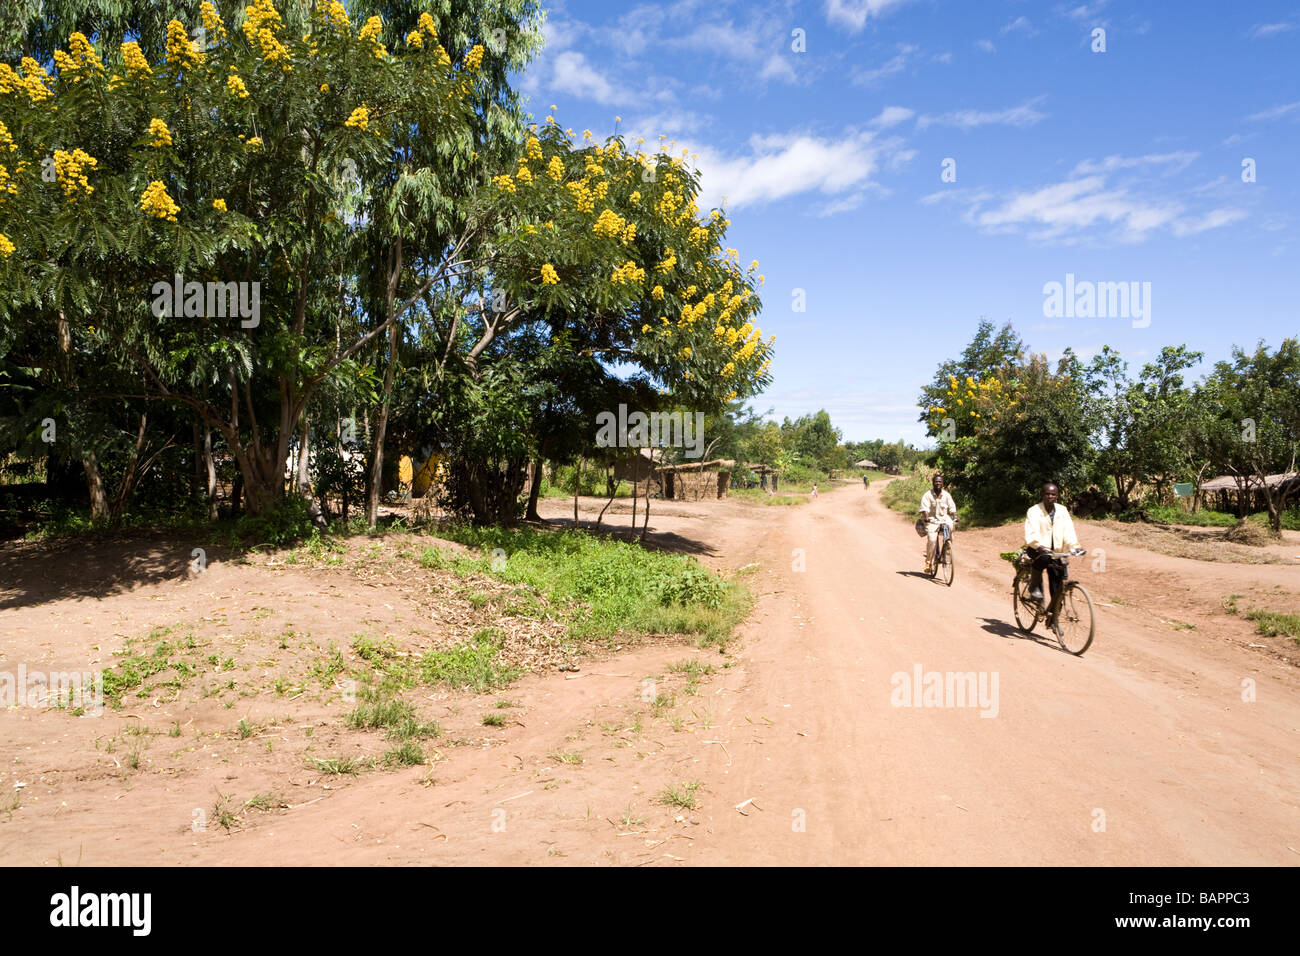 Acacia trees in flower beside the dirt track road through the village of Nyombe, Malawi, Africa Stock Photo